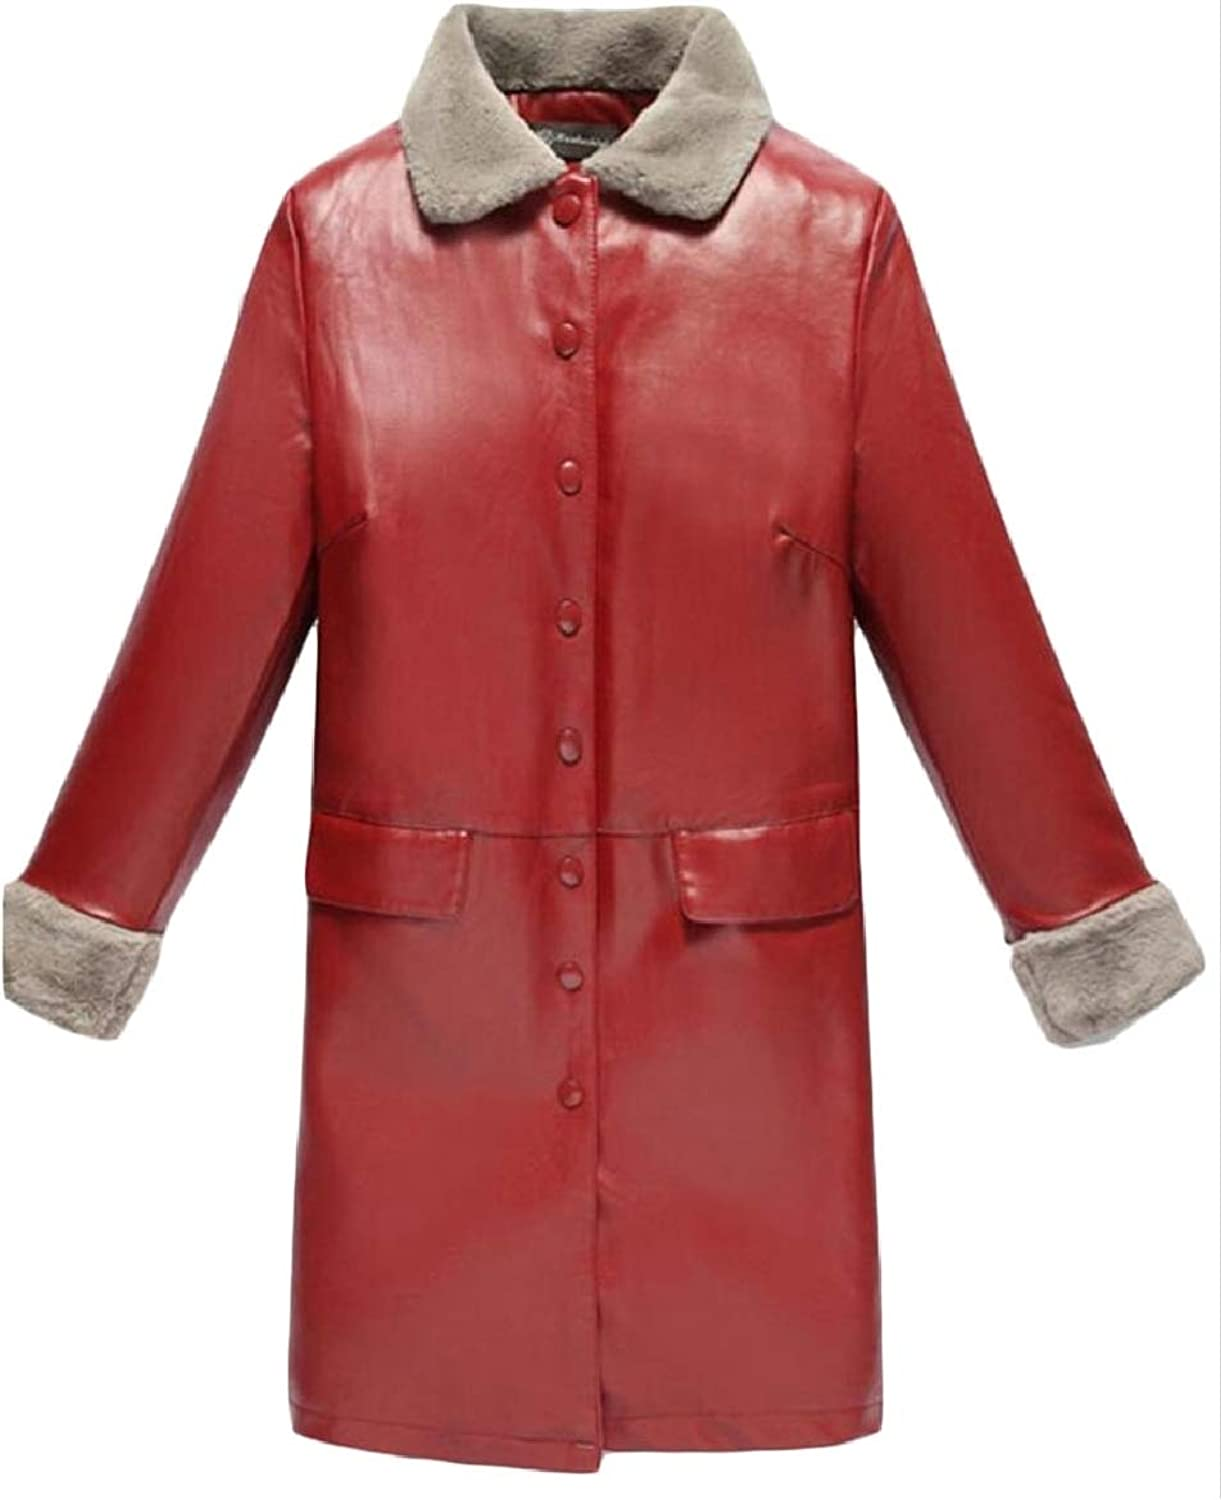 LEISHOP Women's Winter FauxLeather PU Fleece Single Breasted Trench Coat